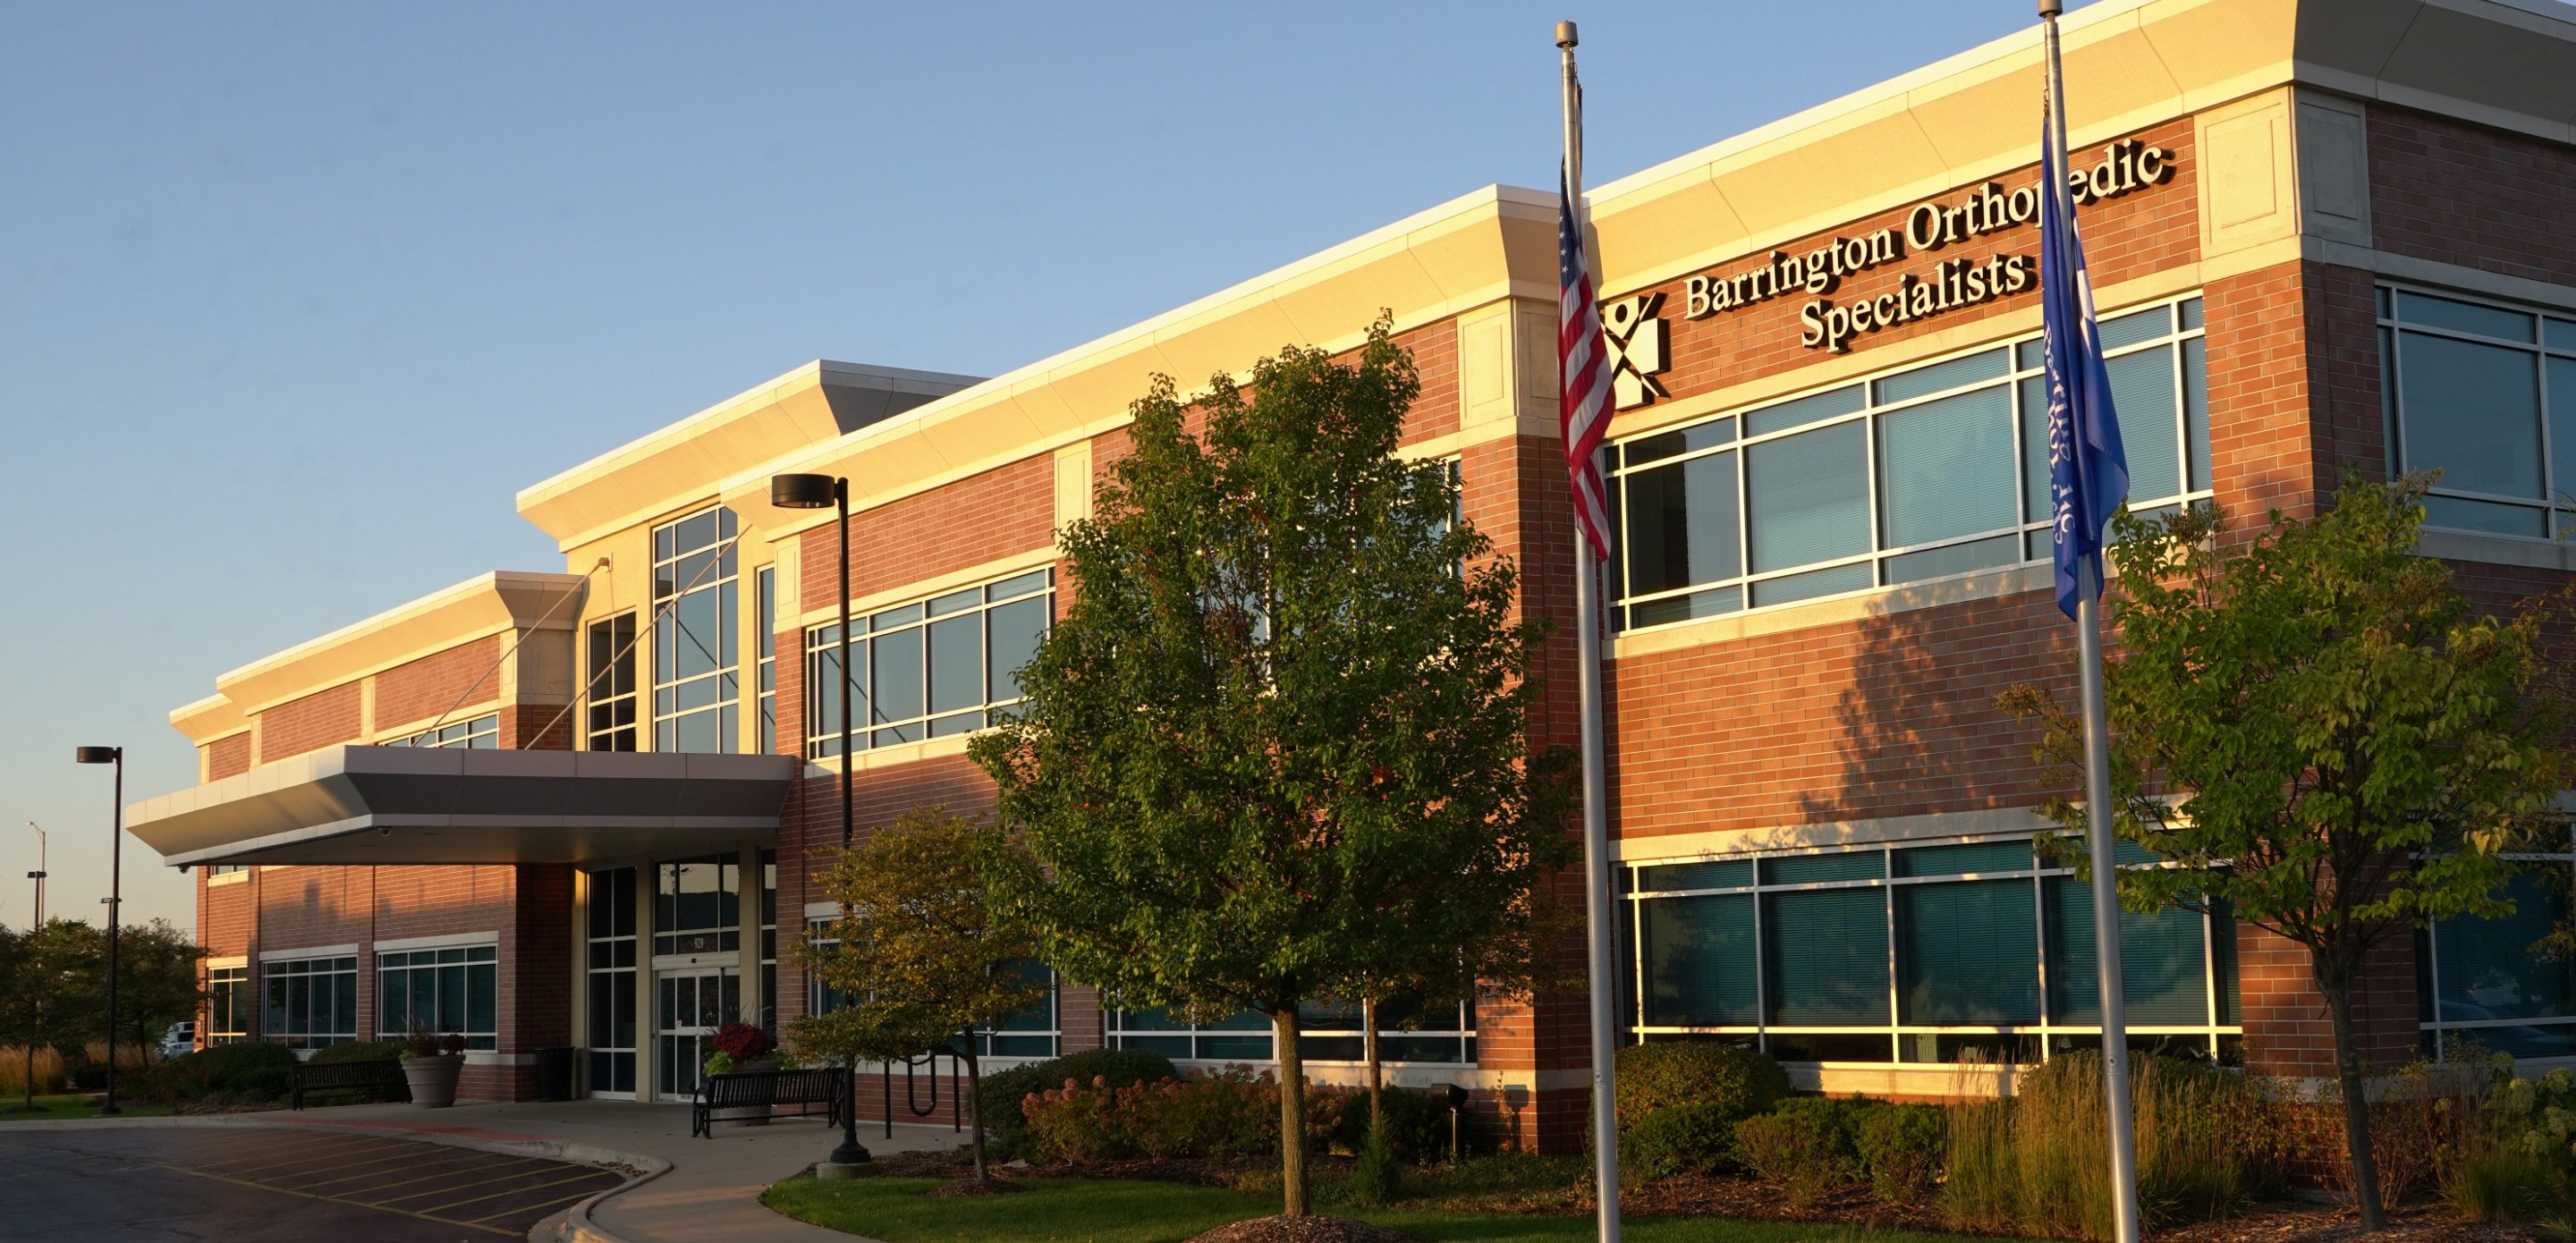 Barrington Orthopedic Specialist's Entrance